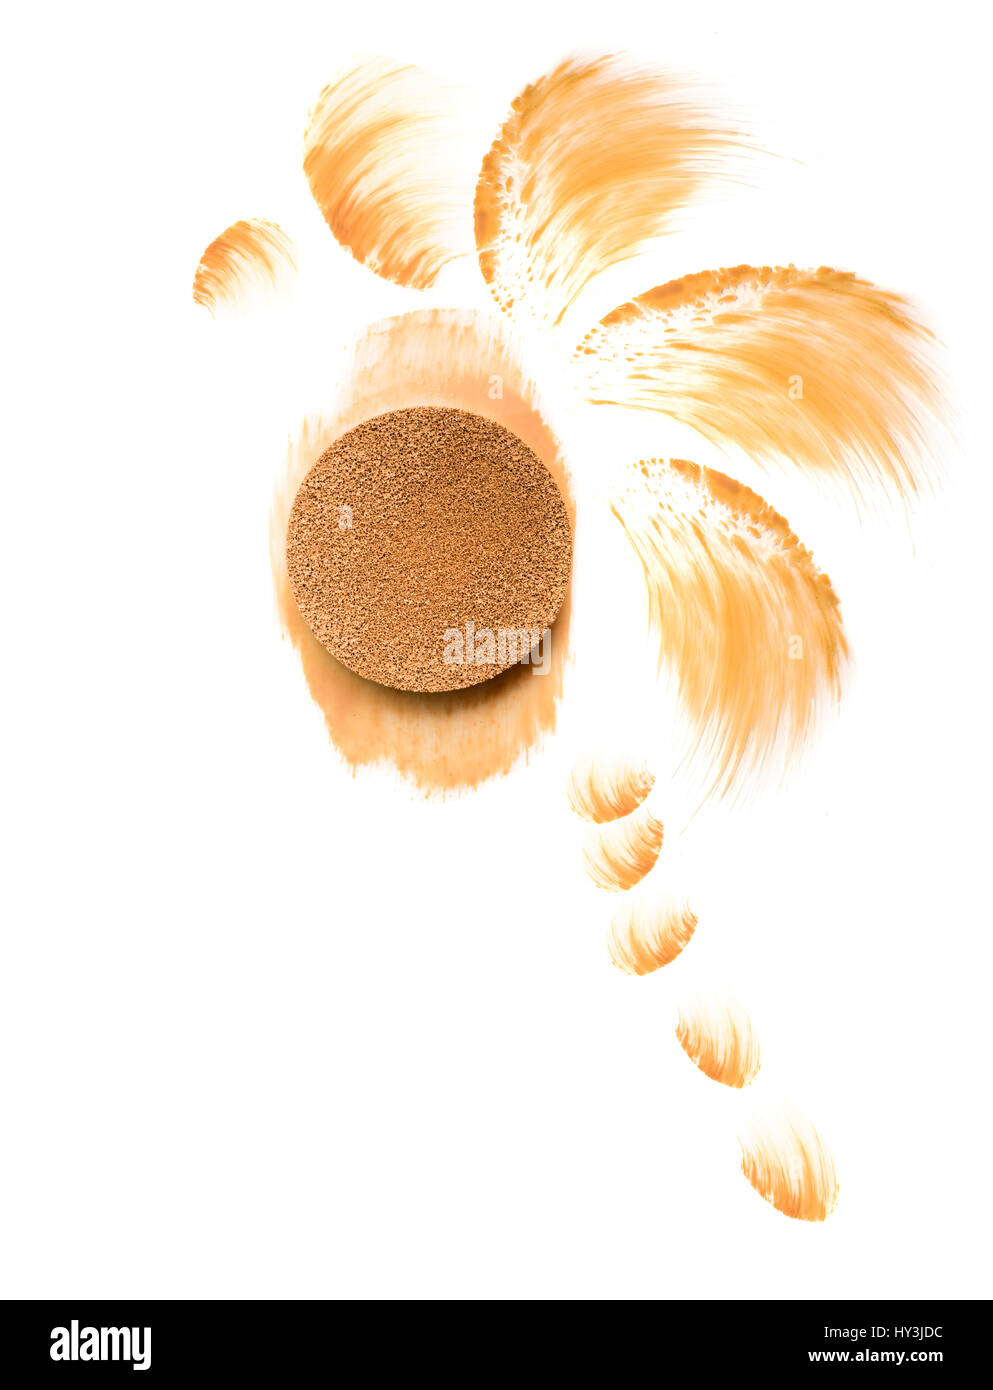 Foundation cushion, painted palm and samples on white batsground Sun protection - Stock Image